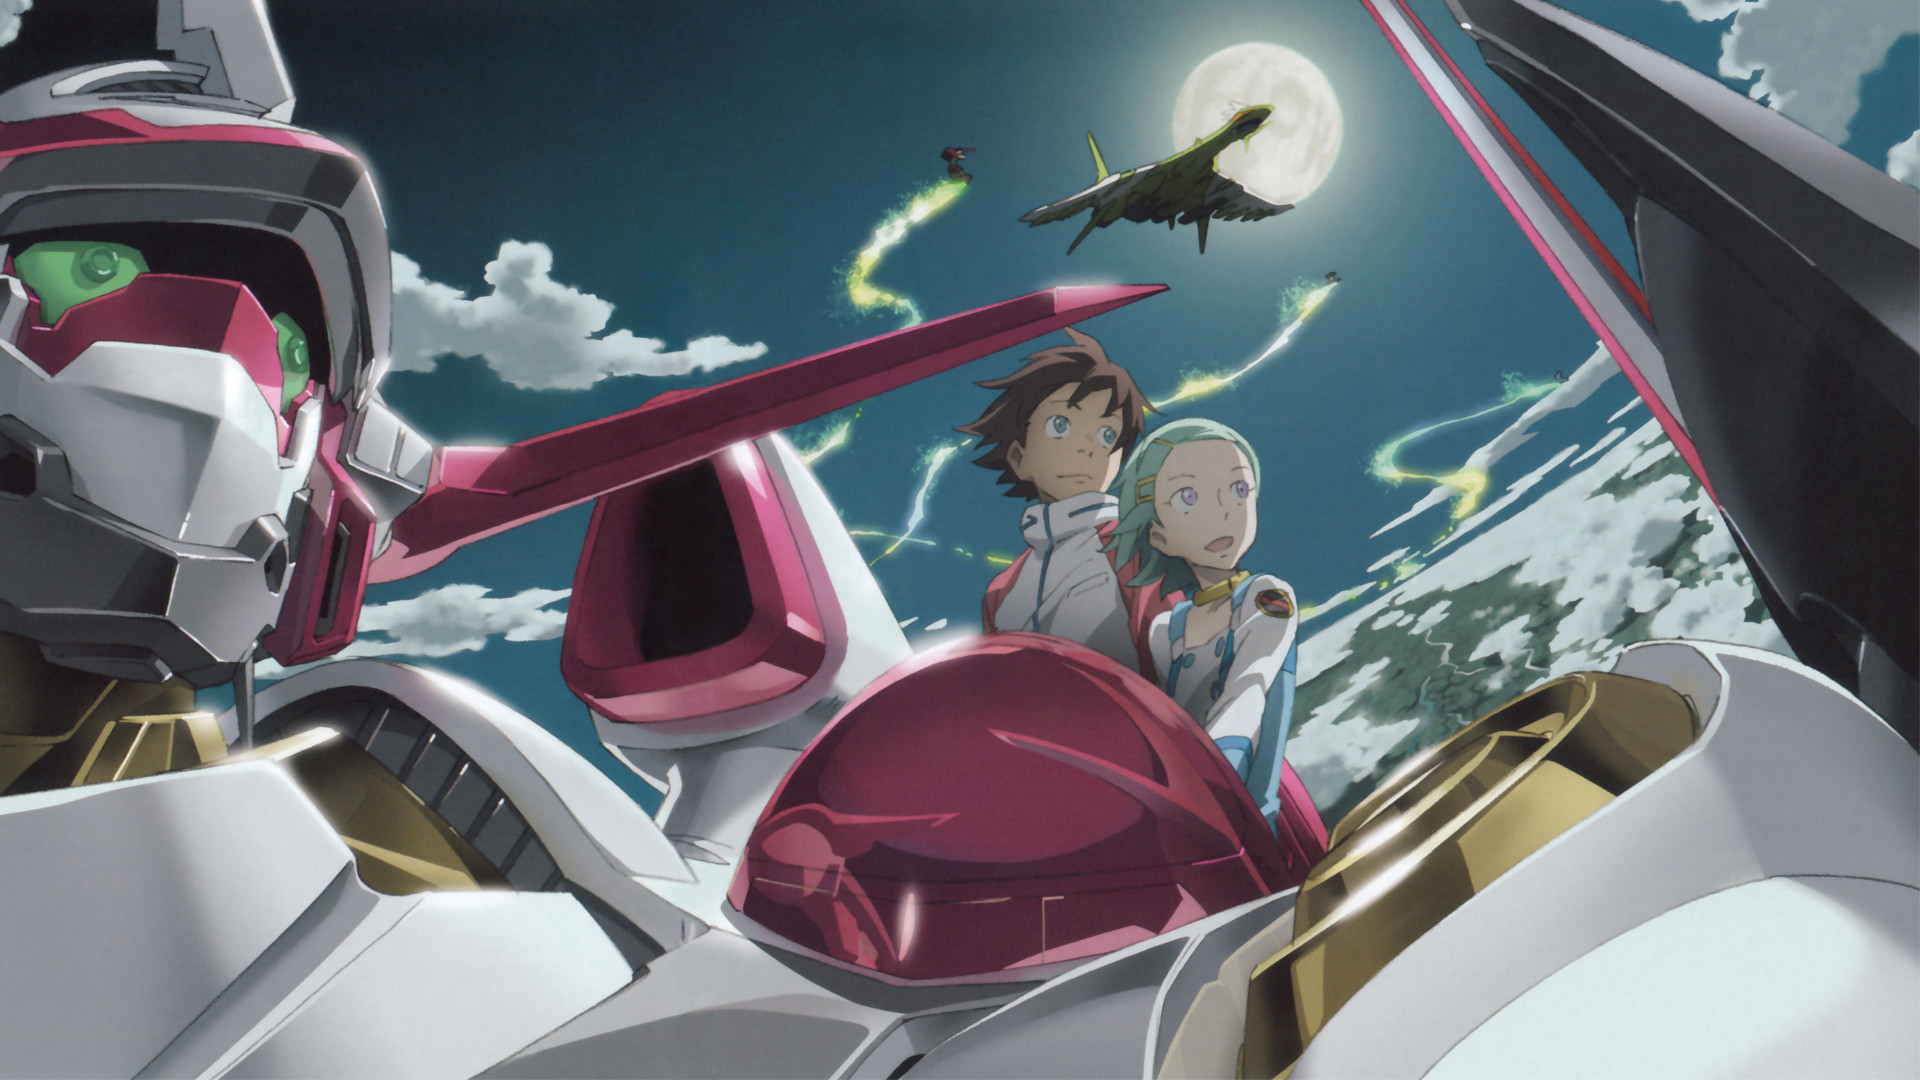 Res: 1920x1080, Eureka Seven Wallpapers